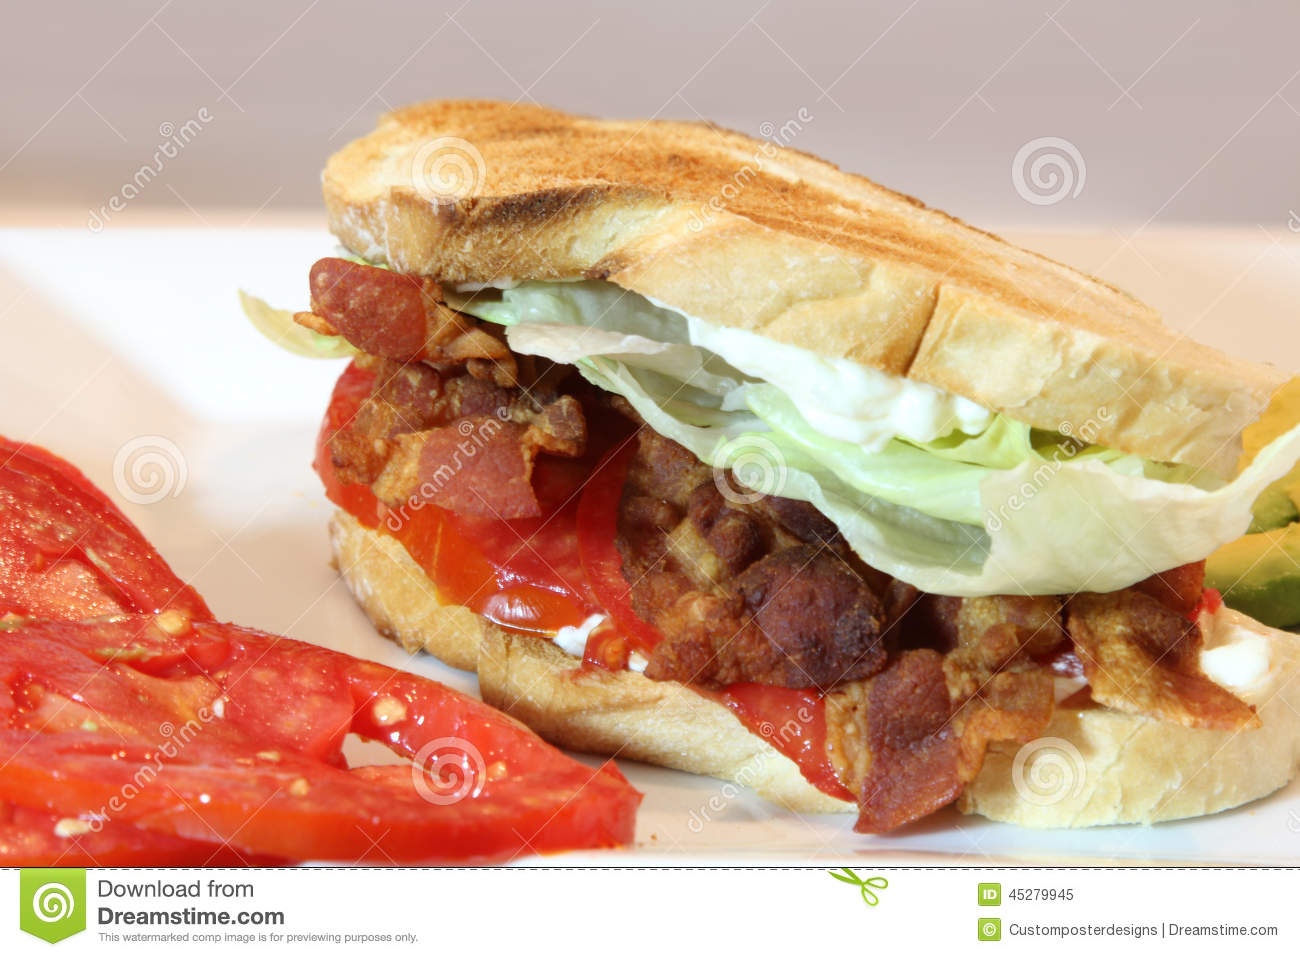 Download A Toasted Bacon, Lettuce And Tomato Sandwich. Stock Image - Image of dinner, american: 45279945